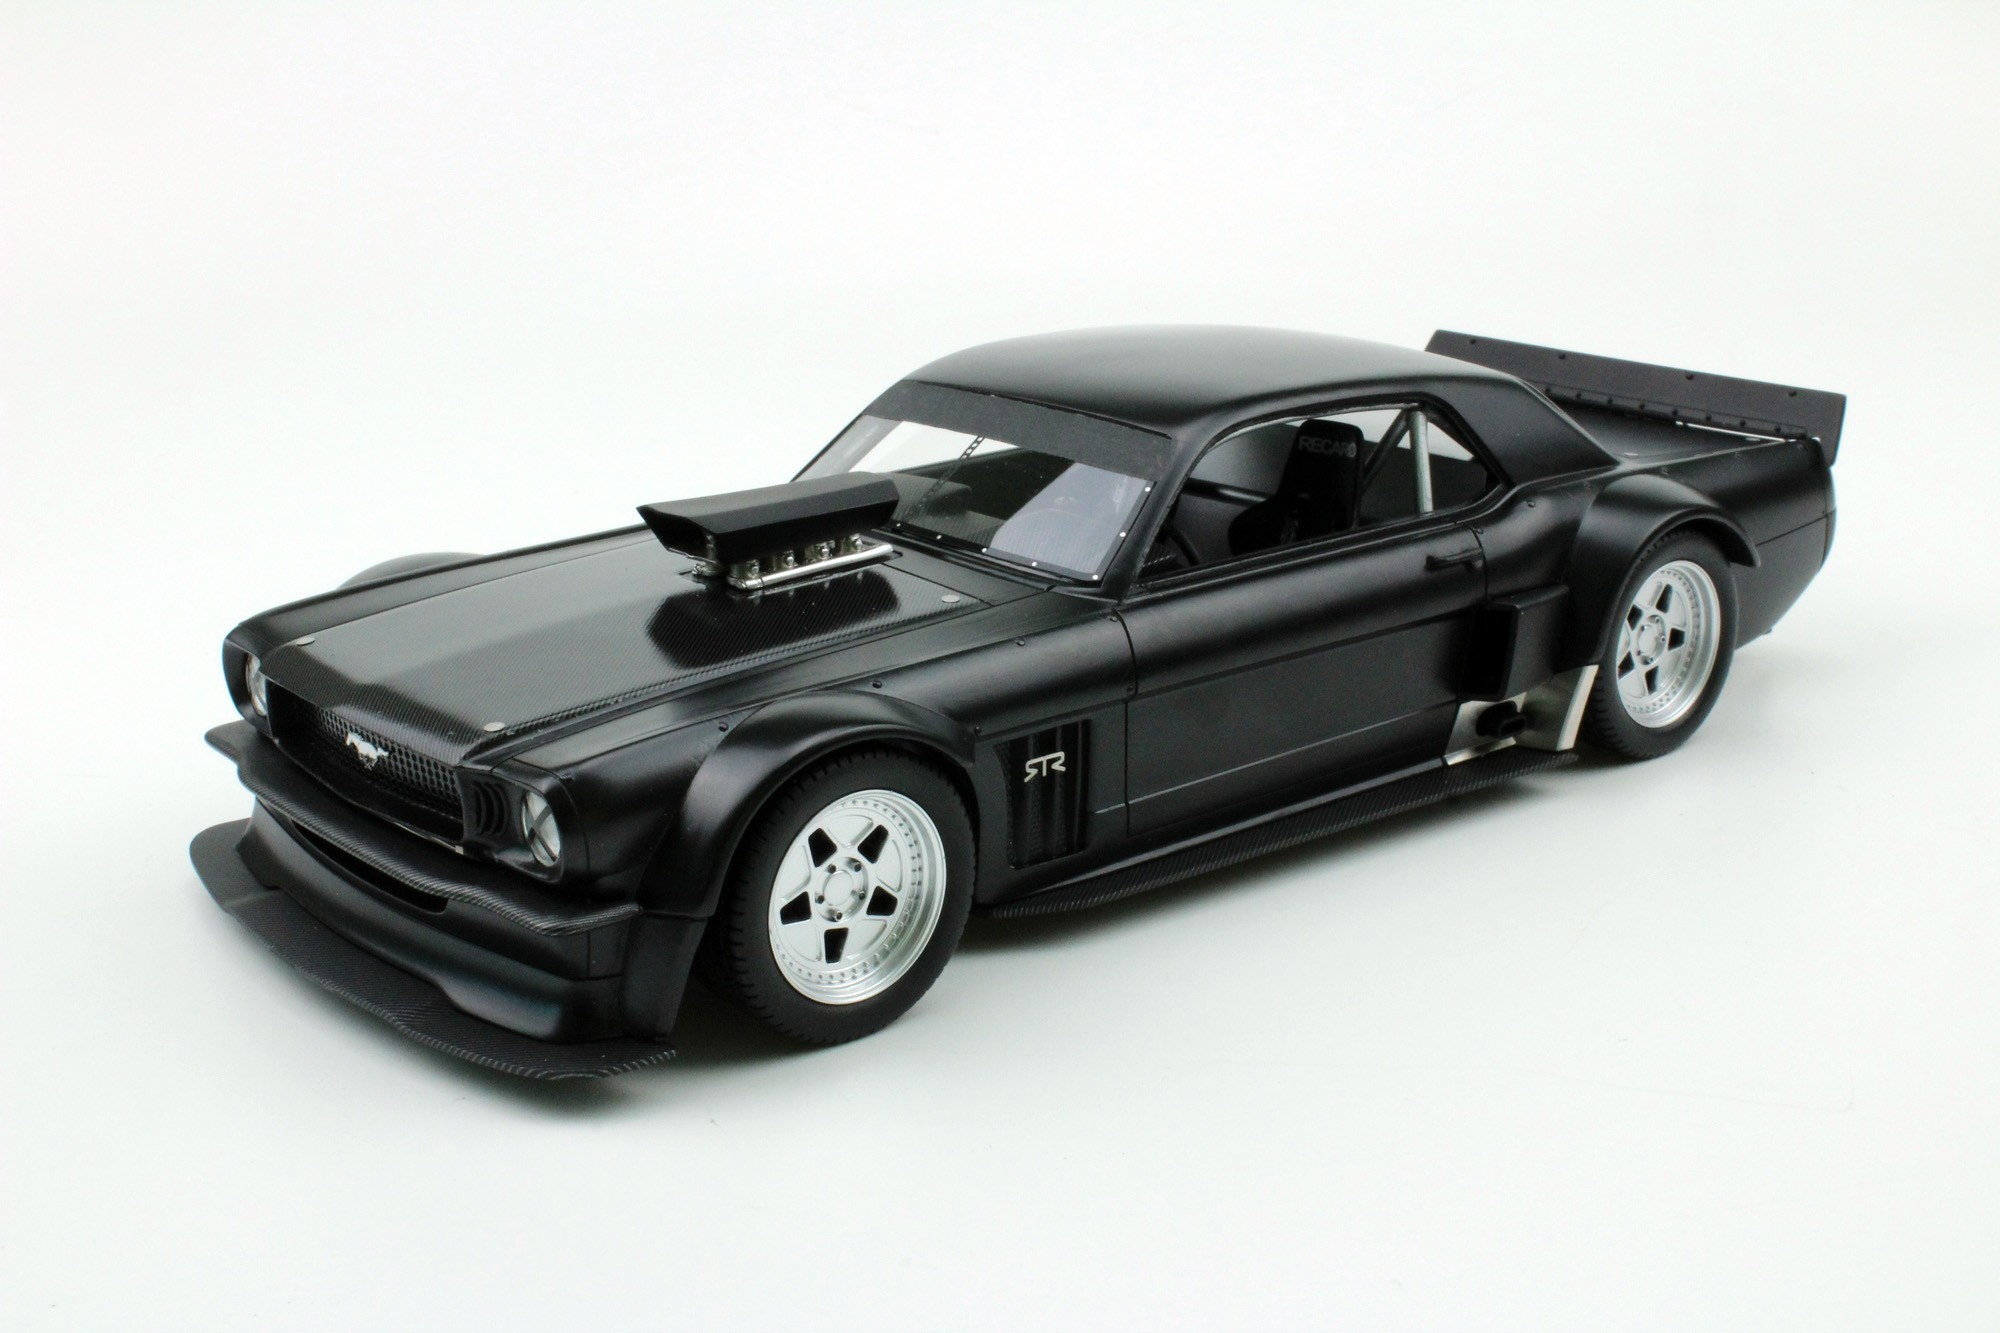 """Maserati >> Top Marques Collectibles Ford Mustang 1965 """"Black Edition"""", 1:18 black 